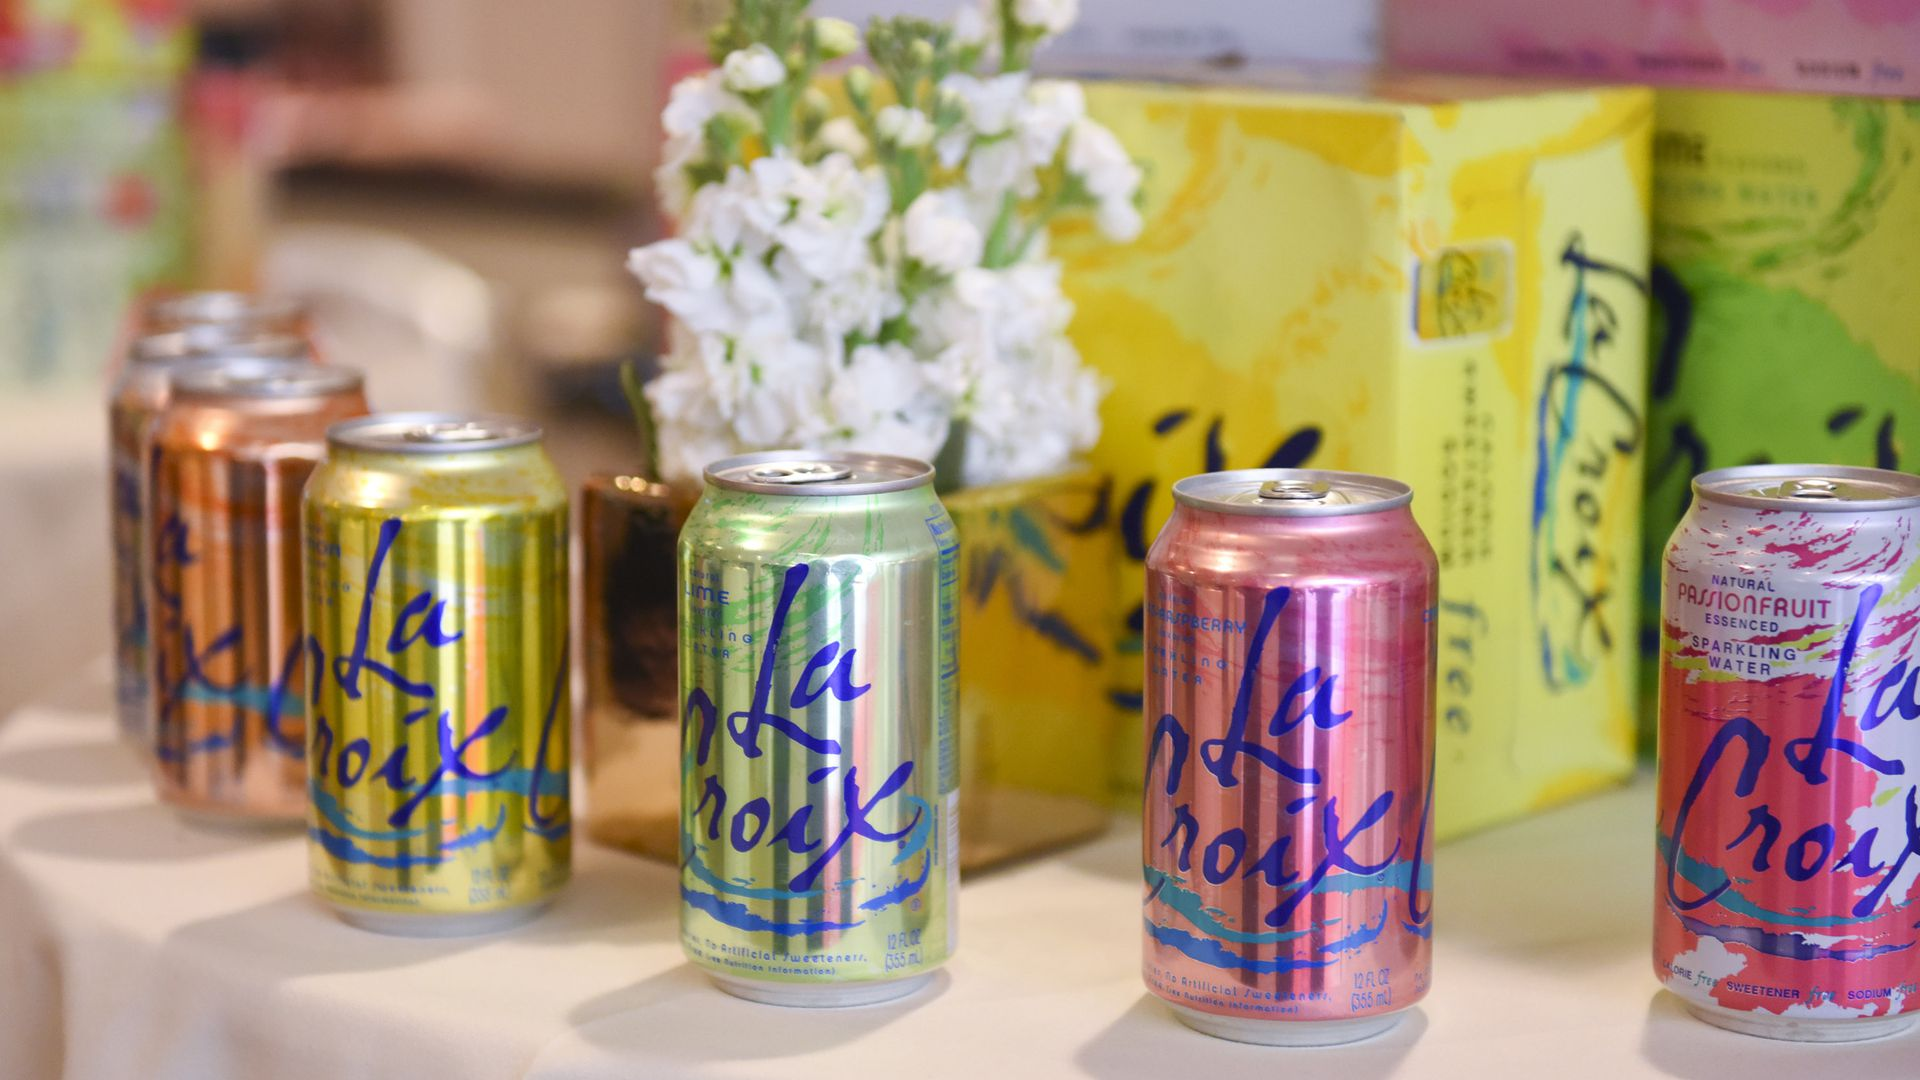 LaCroix billionaire accused of harassment and unwanted touching 1920x1080